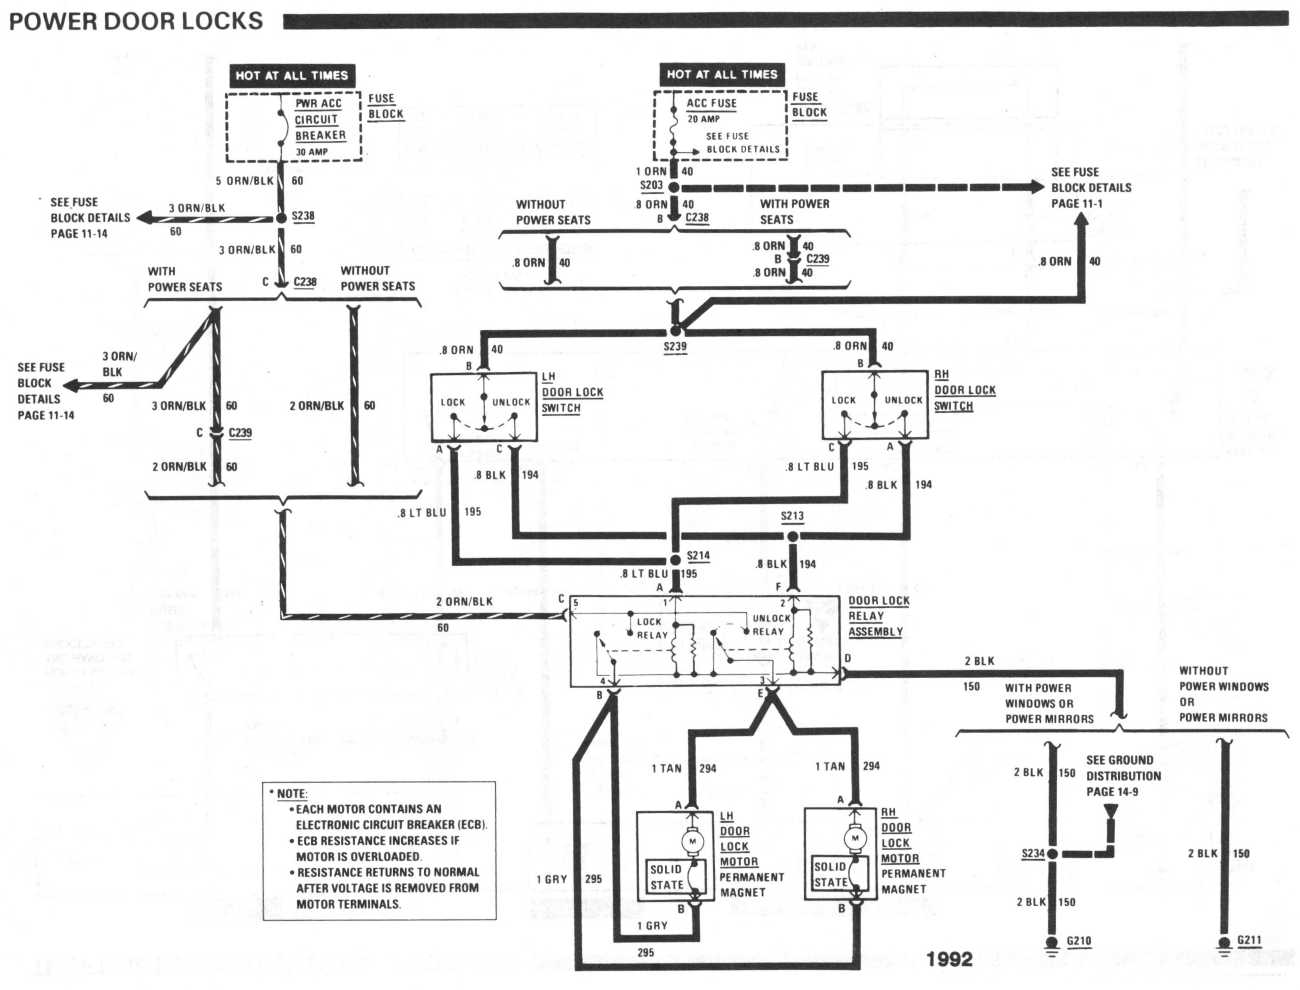 1978 Trans Am Wiring Diagram Power Windows Wire Data Schema Ac 79 Diagrams Door Locks Not Working At All Third Generation F Camaro 1970 Firebird